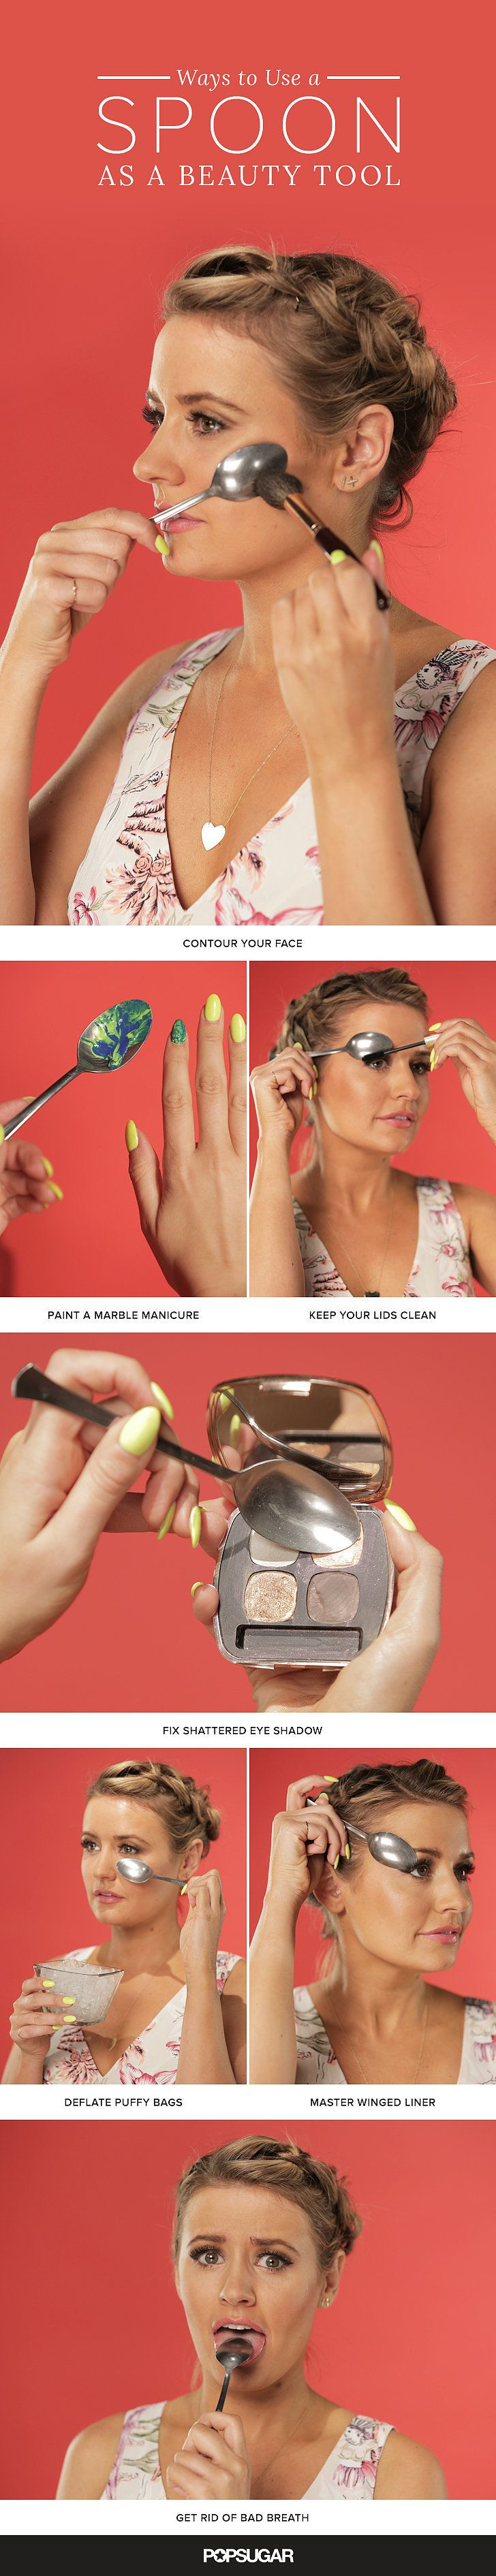 Underrated things in life: clean sheets, handwritten notes, taking your bra off after a long day, and spoons. Yes, your rounded silverware isn't just for eating. They have a variety of uses – especially when it comes to getting ready! First off, they're great for creating DIY nail art. They can help depuff bloating under eyes. Want to avoid mascara on your lids? They're great for preventing that, too! Check out the rest of our tips using our favorite cutlery, then let us know your favorite uses!: